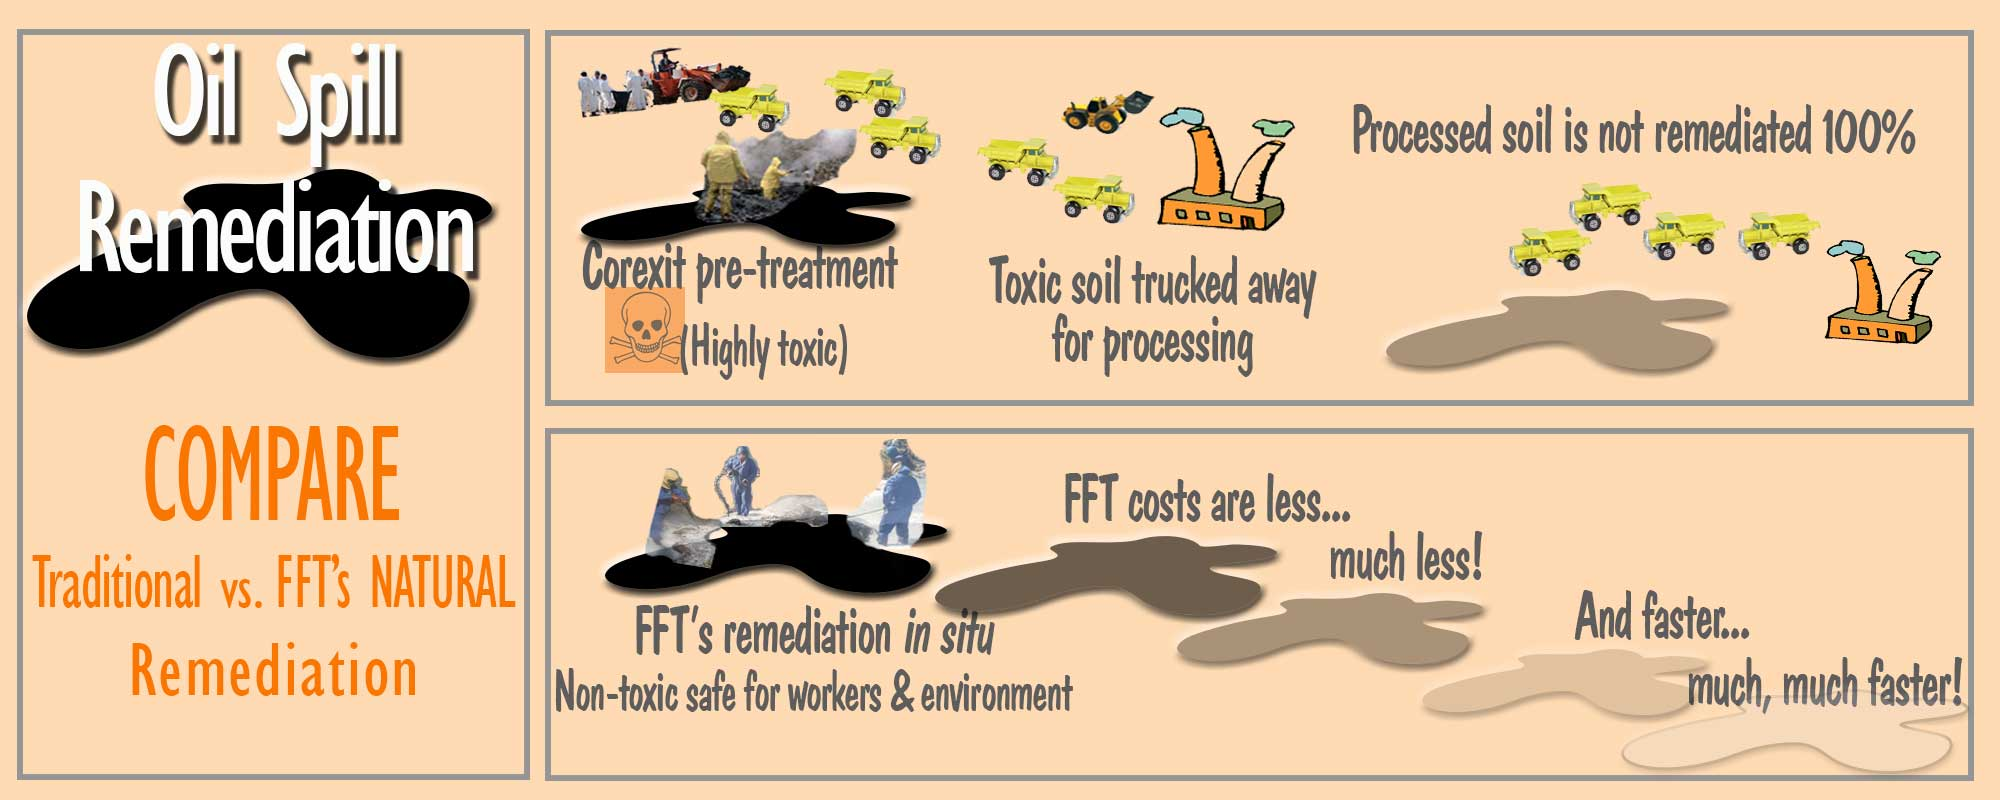 FFT Remediation